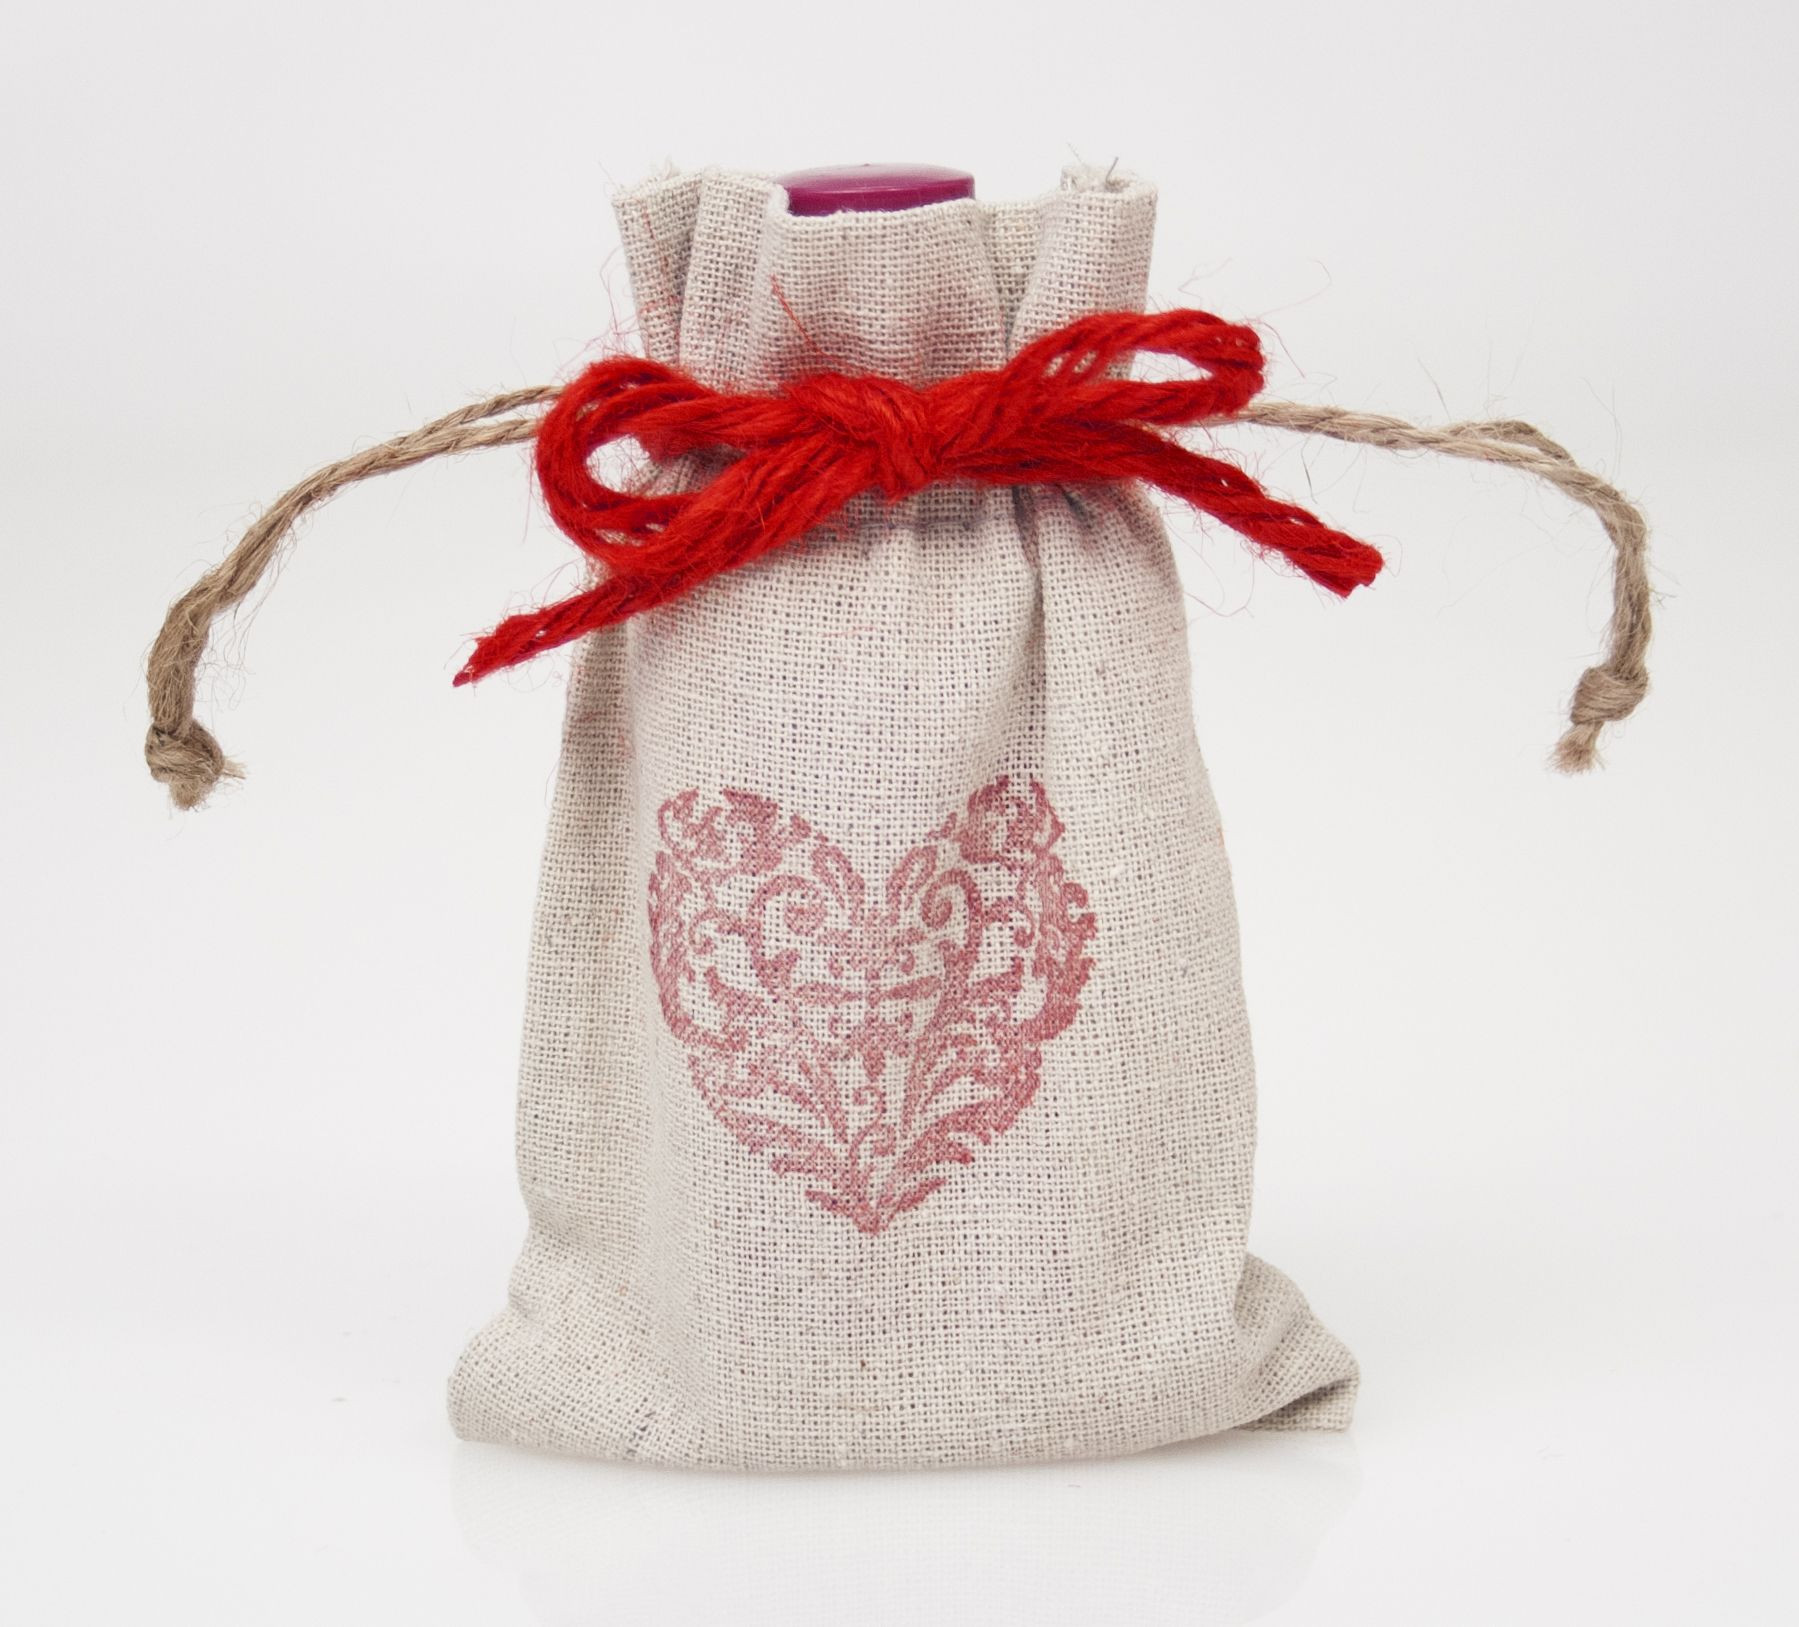 Valentine Day Gift Wrapping Ideas  10 Sweet Packaging Ideas for Valentine's Day